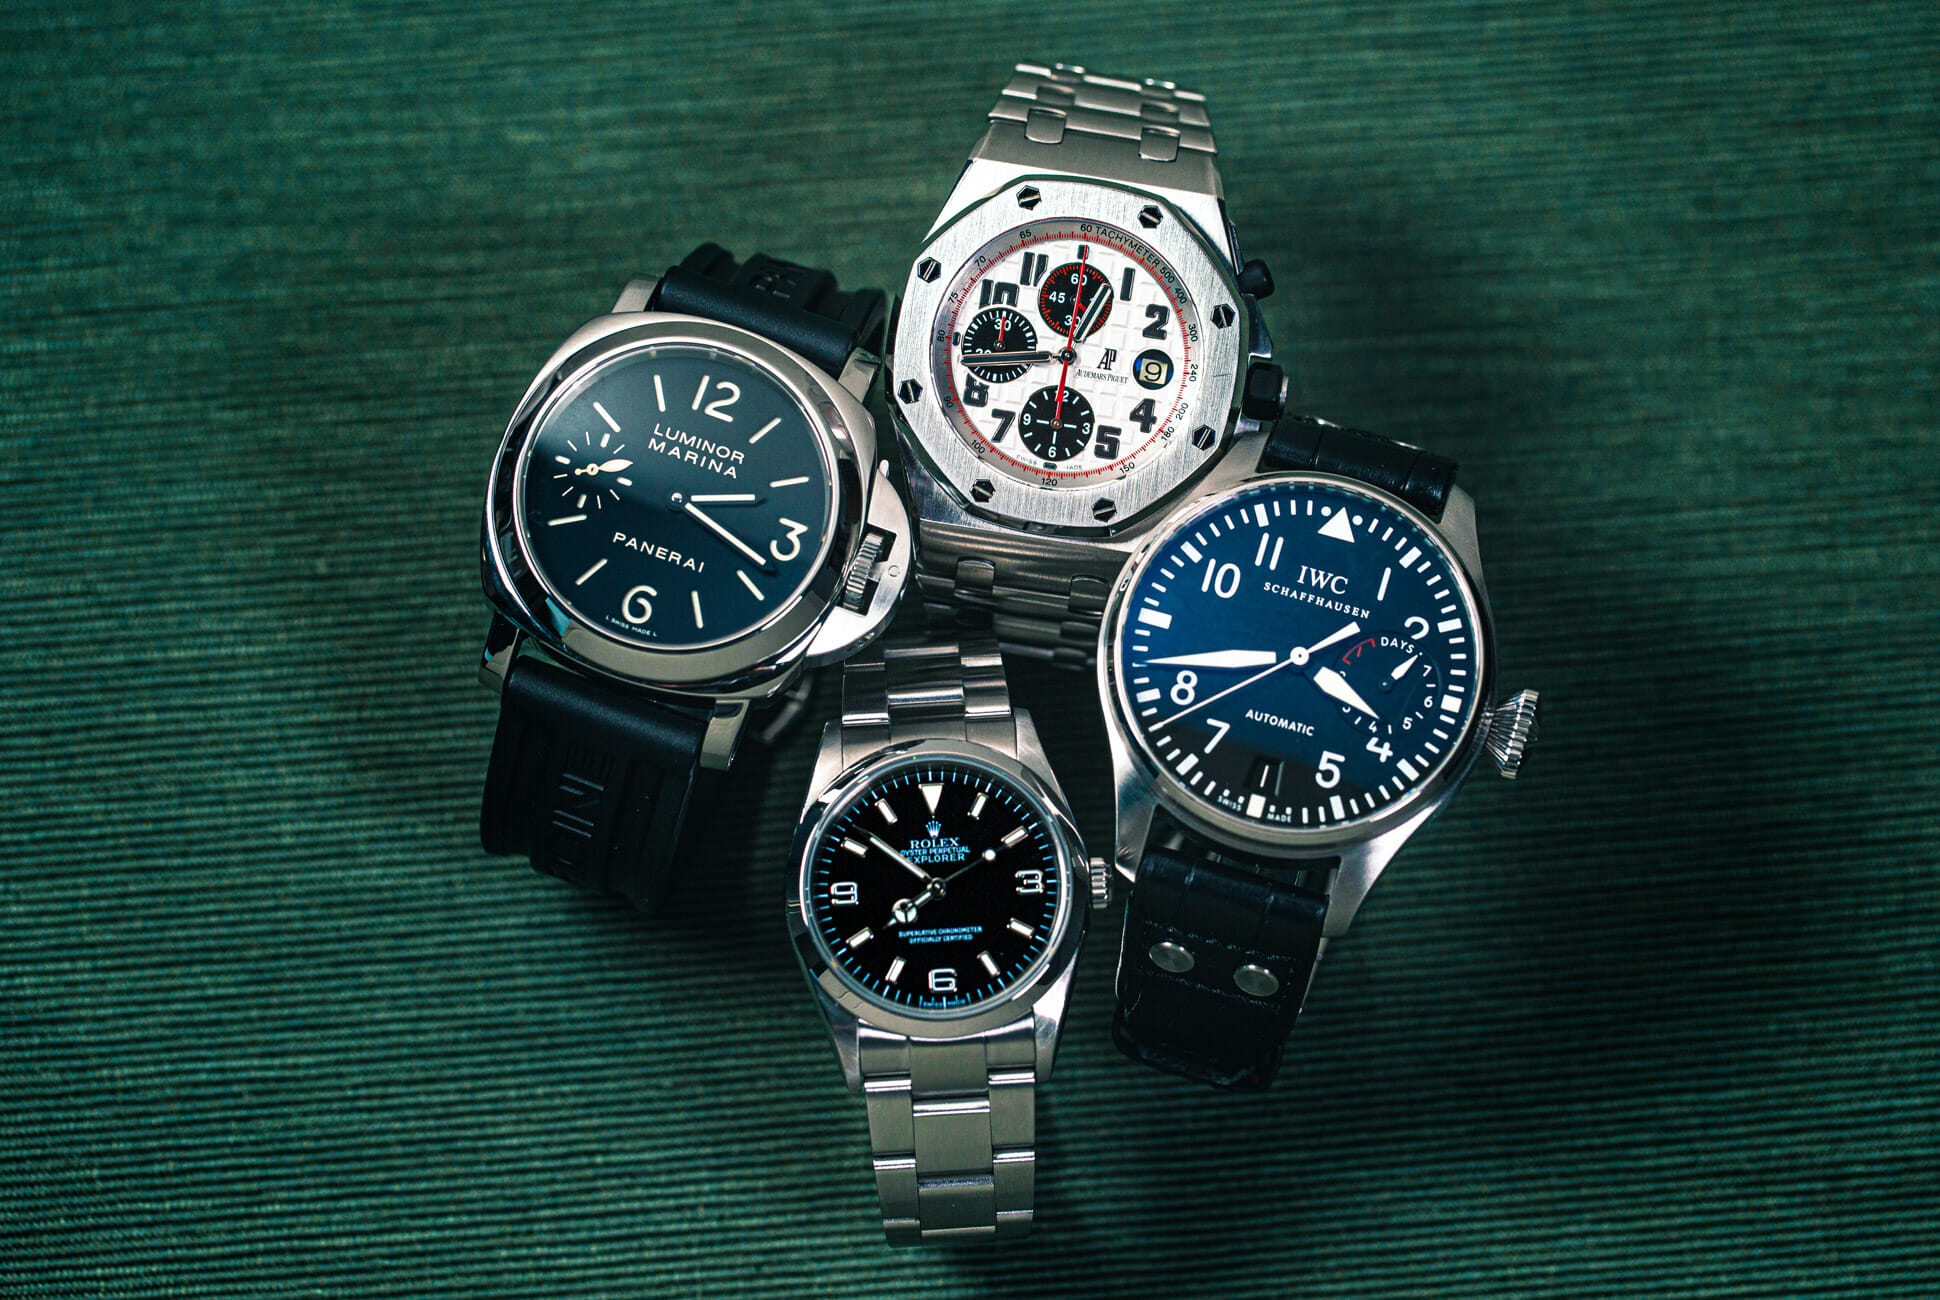 Crown & Caliber Makes Buying Watches a Breeze